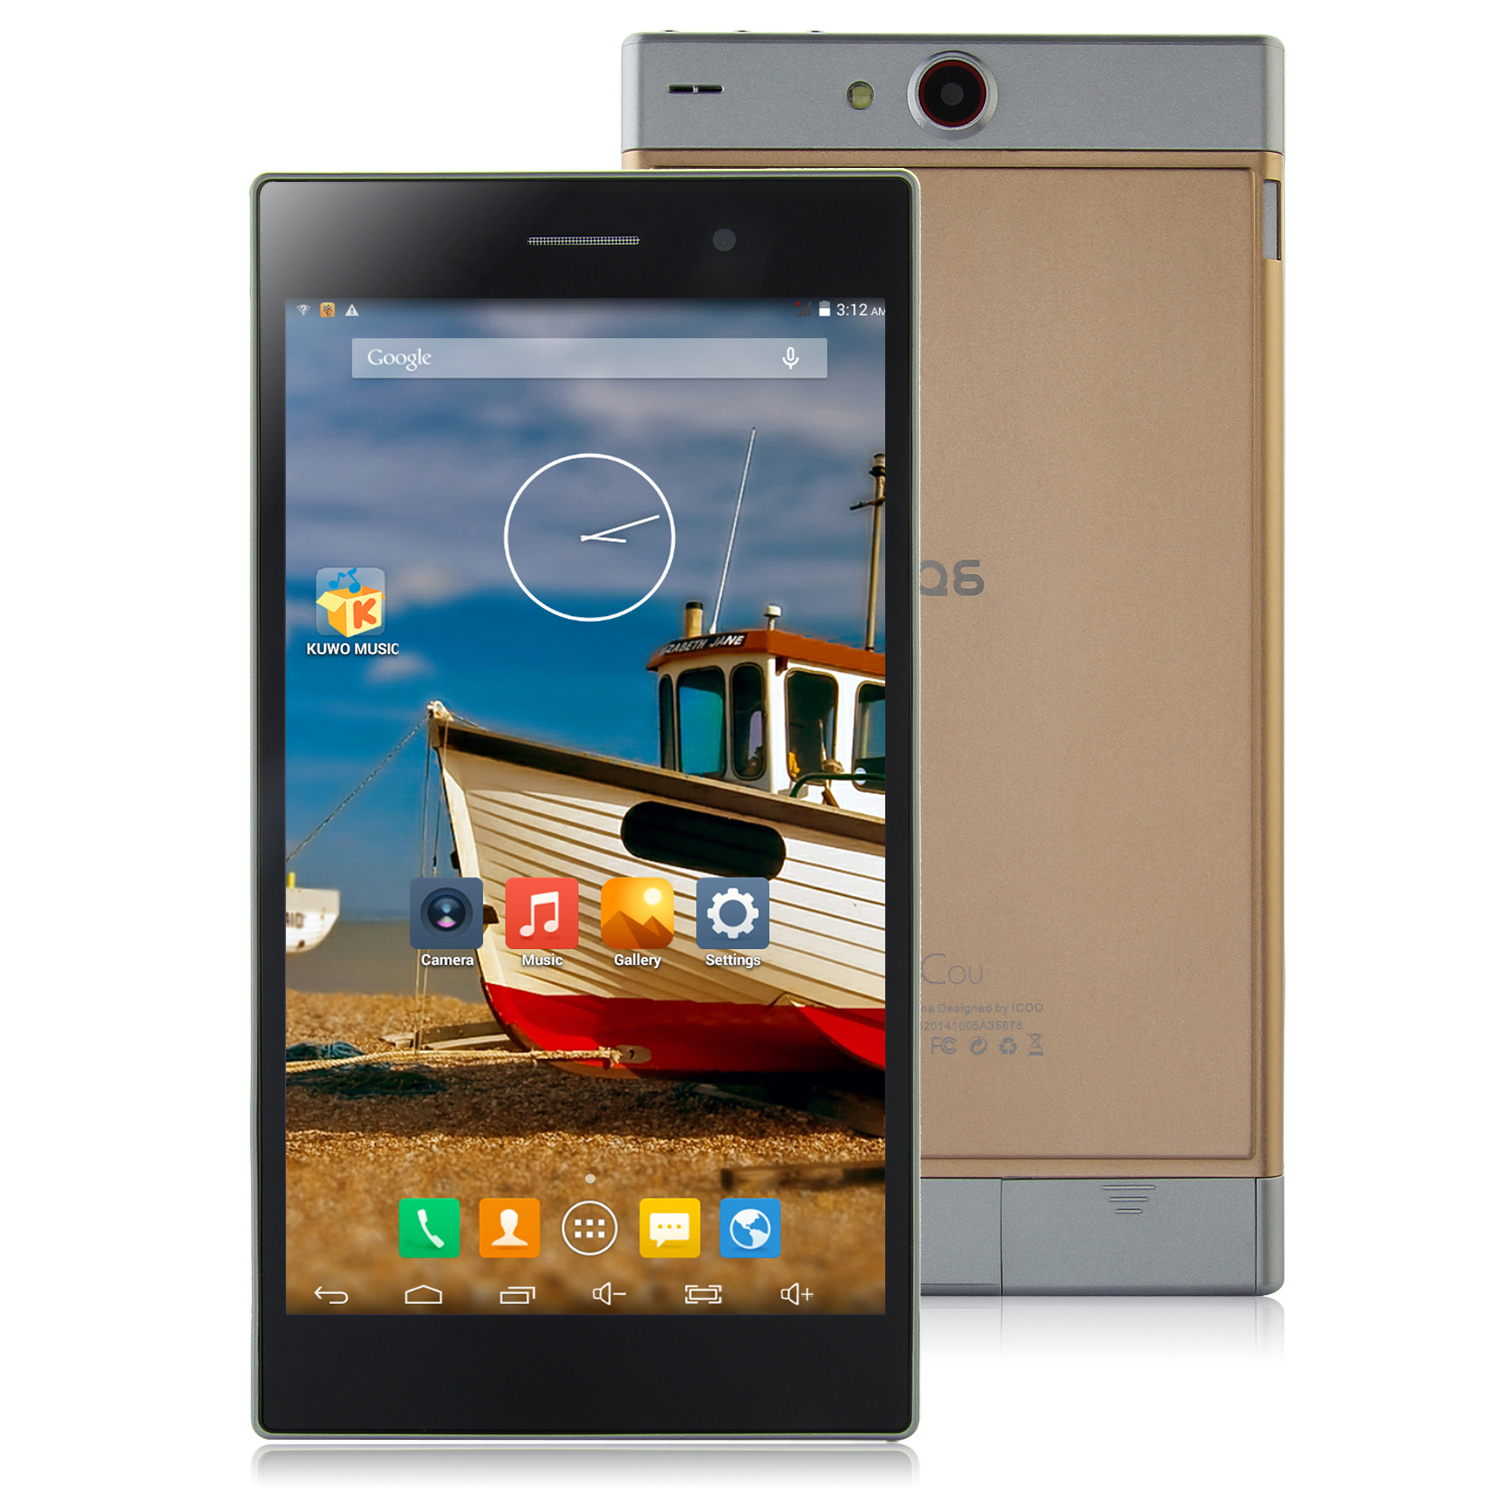 ICOO Q6 Tablet PC MTK8382 Quad Core 7.0 Inch Android 4.4 IPS Screen 1GB 8GB Golden